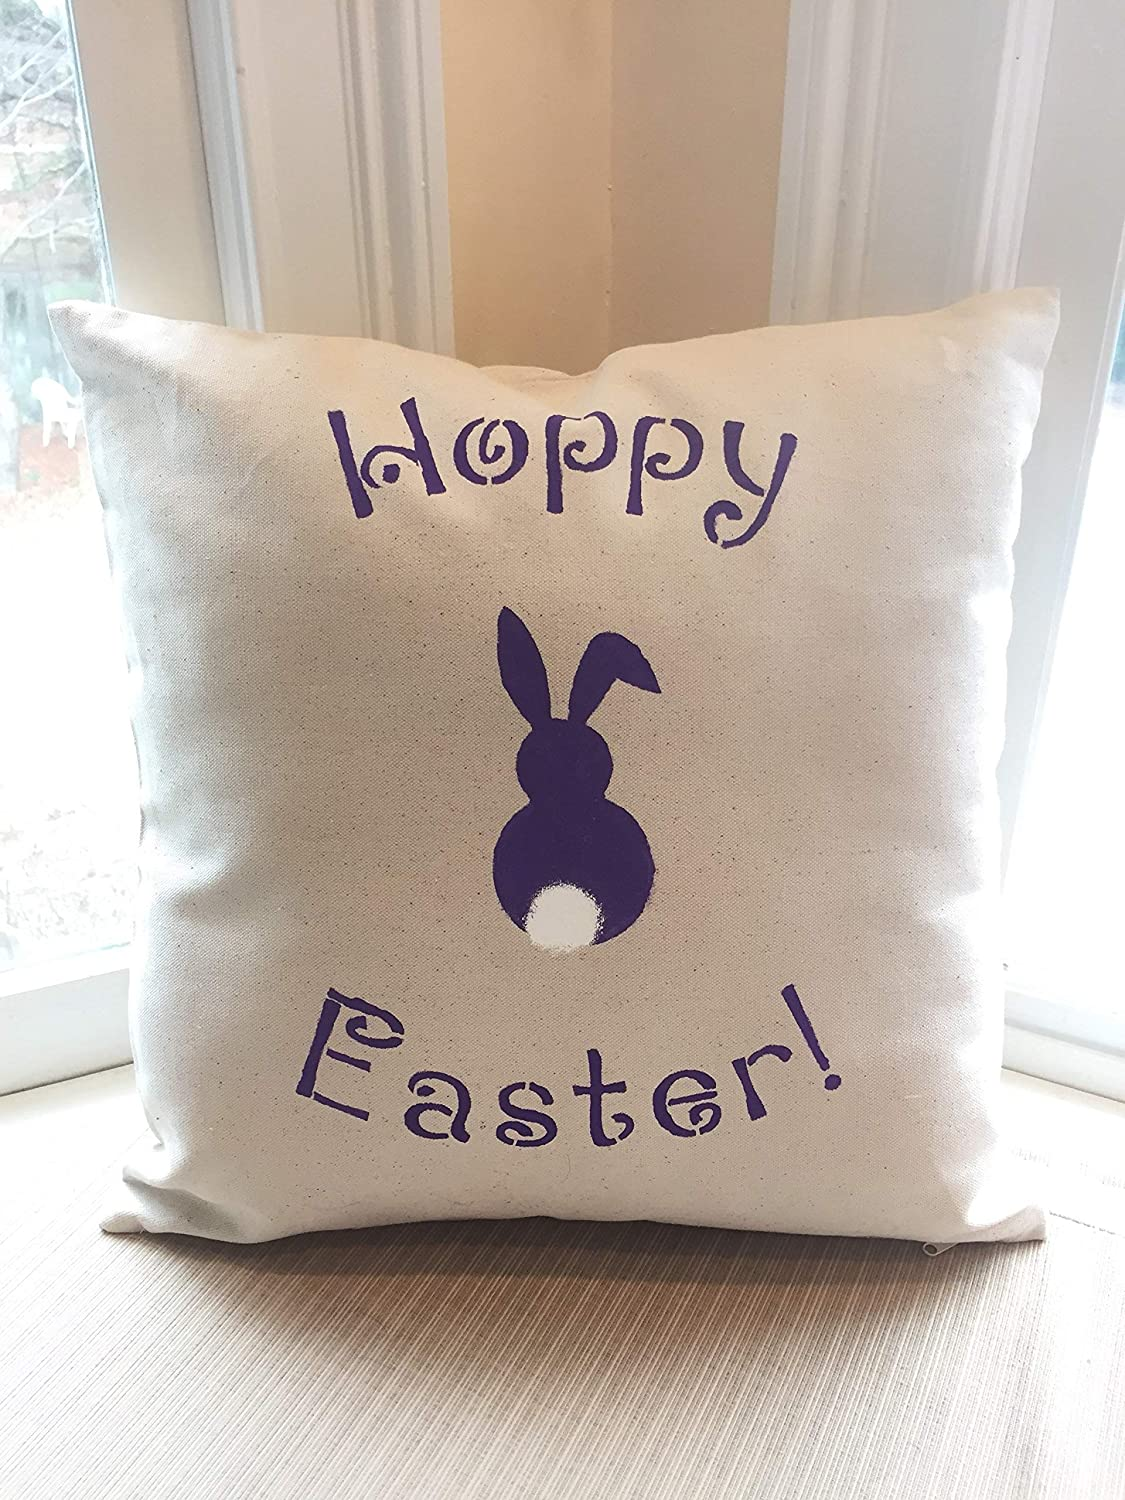 Feliwe Hoppy Easter Throw Pillow Happy Easter Pillow Cover Easter Pillow Throw Pillow Cotton Linen Pillow Cover Amazon Co Uk Kitchen Home